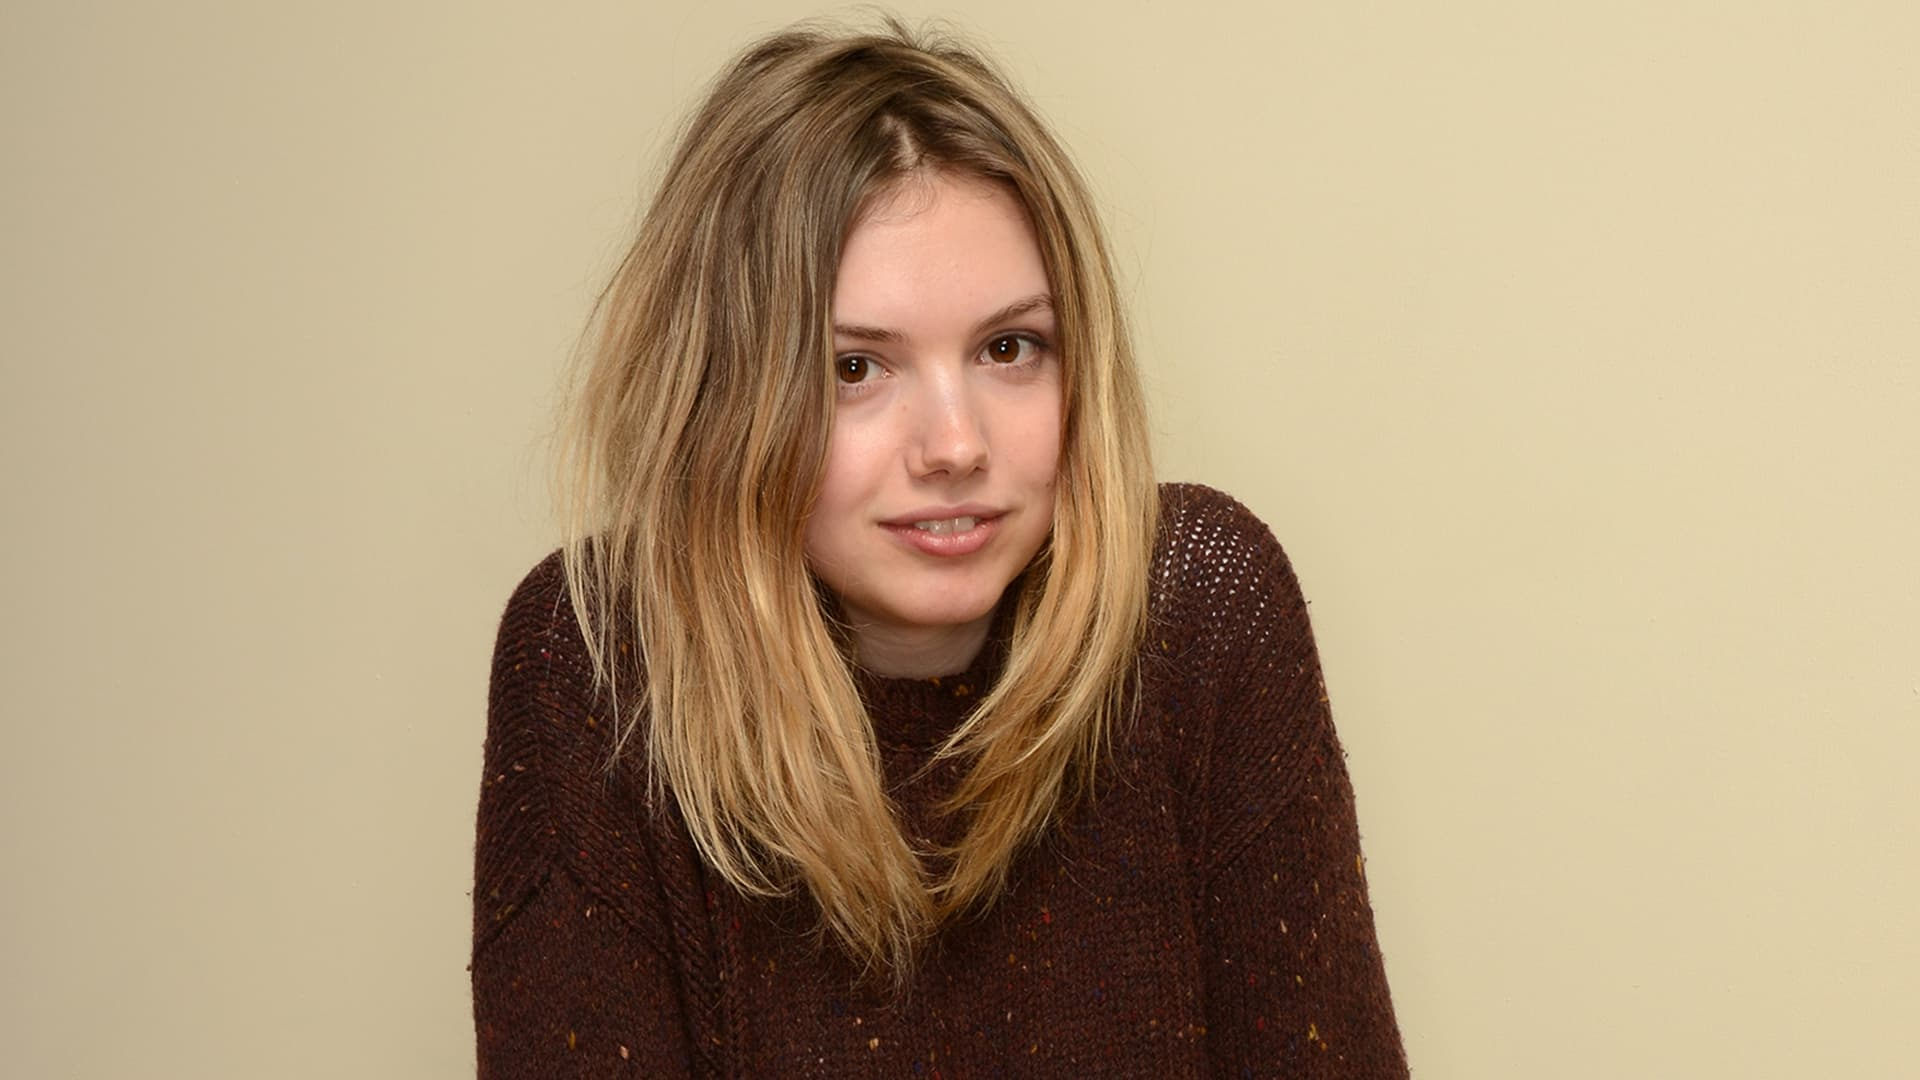 Download The Car Wallpaper Hannah Murray Wallpapers Hd High Quality Resolution Download